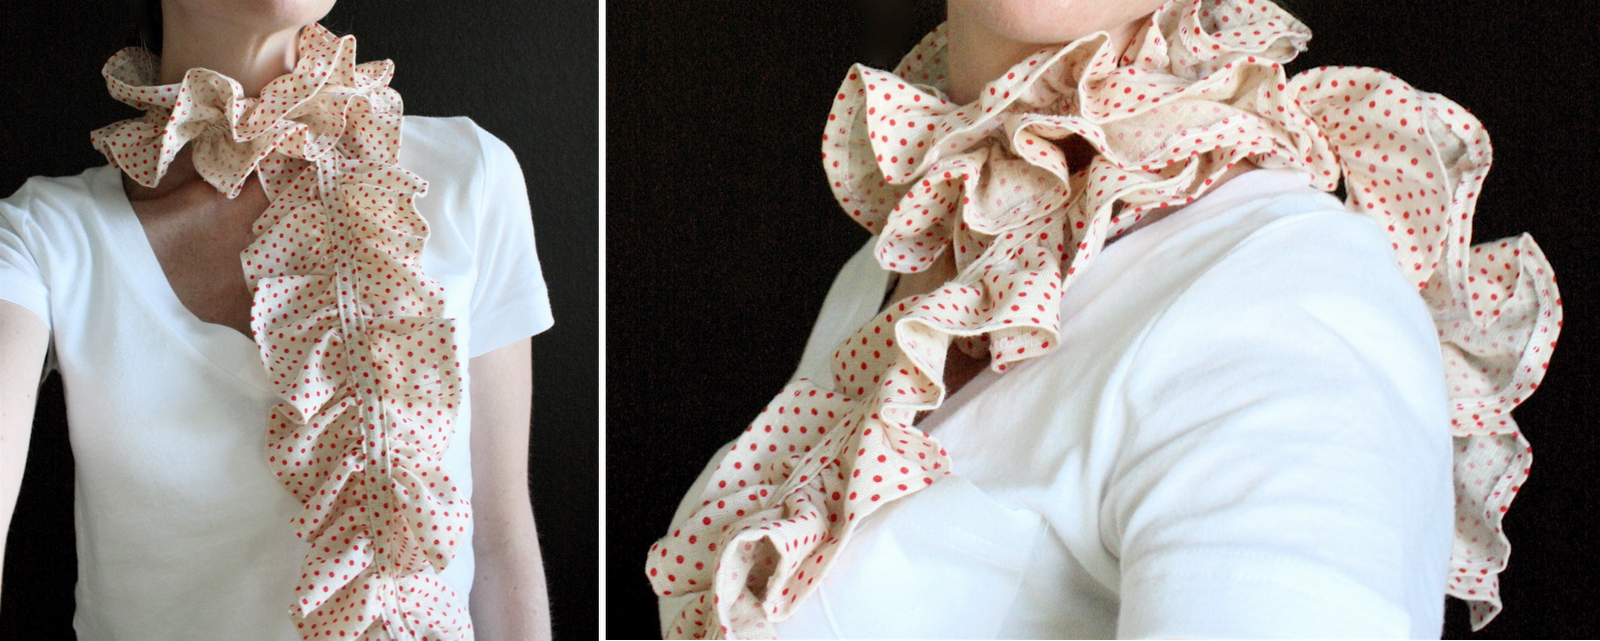 Knitting Summer Scarves : Summer scarf made everyday